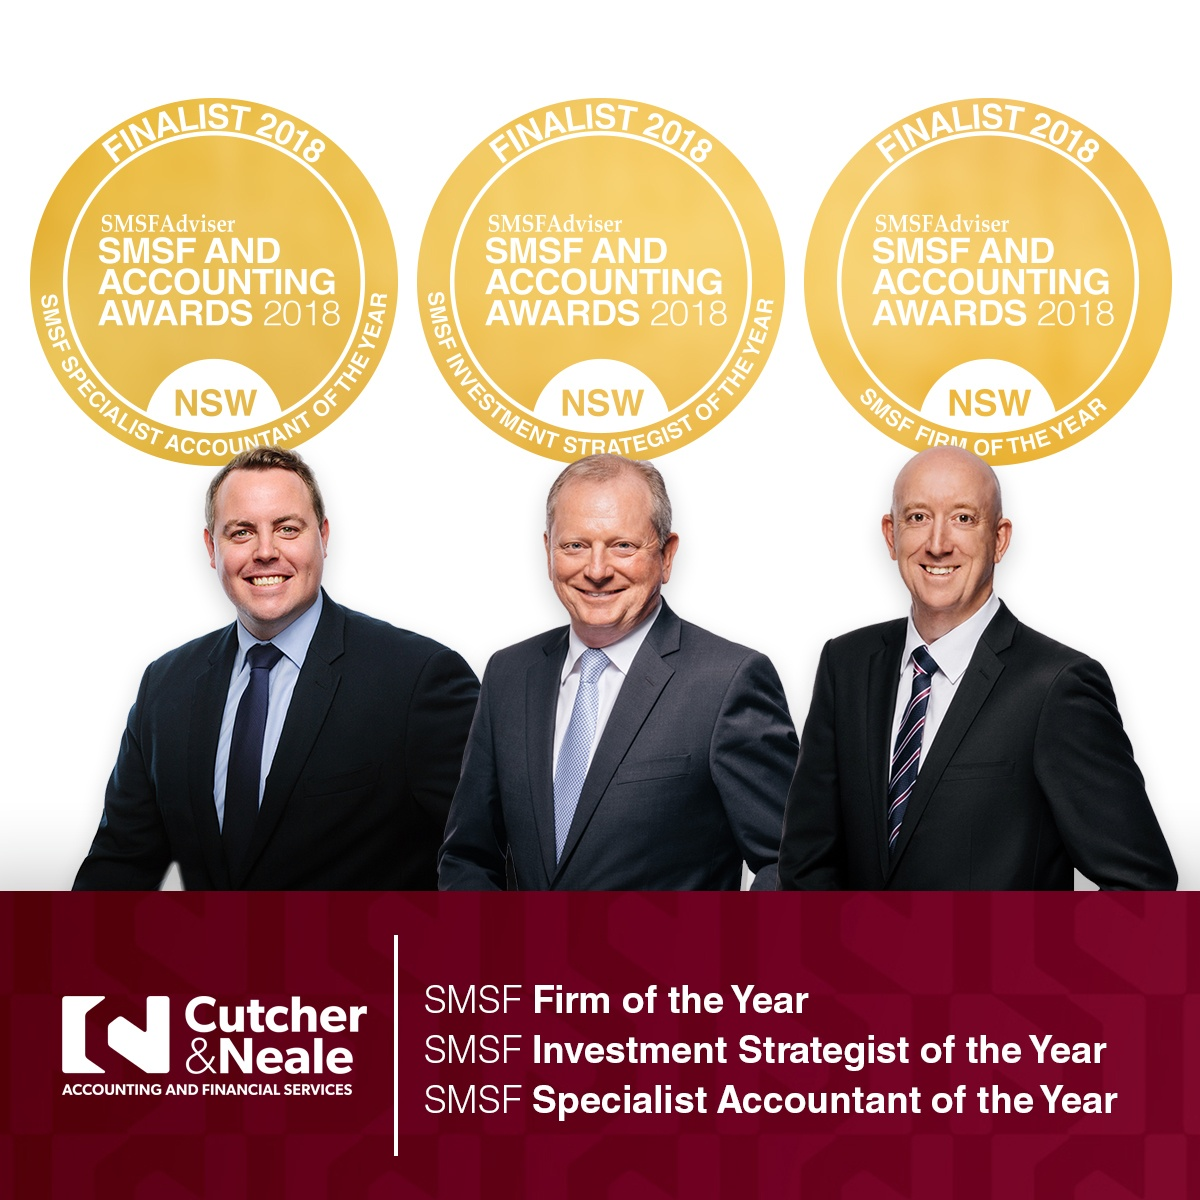 Facebook SMSF Awards post_v2